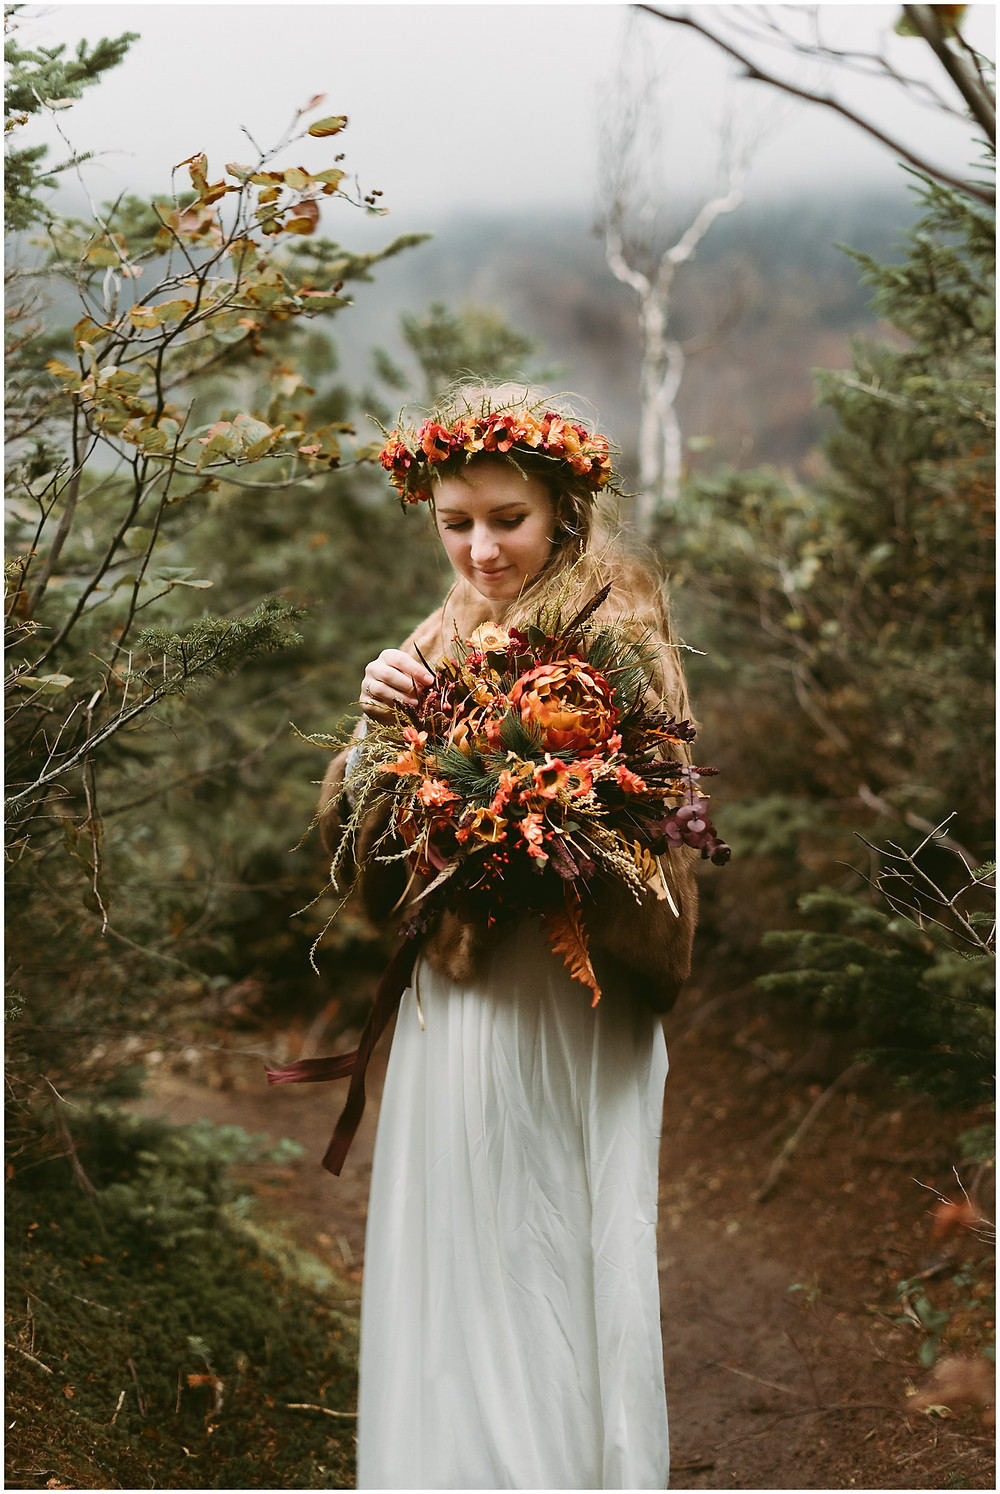 Adirondack bride with flower crown and bouquet by Mountainaire Gatherings